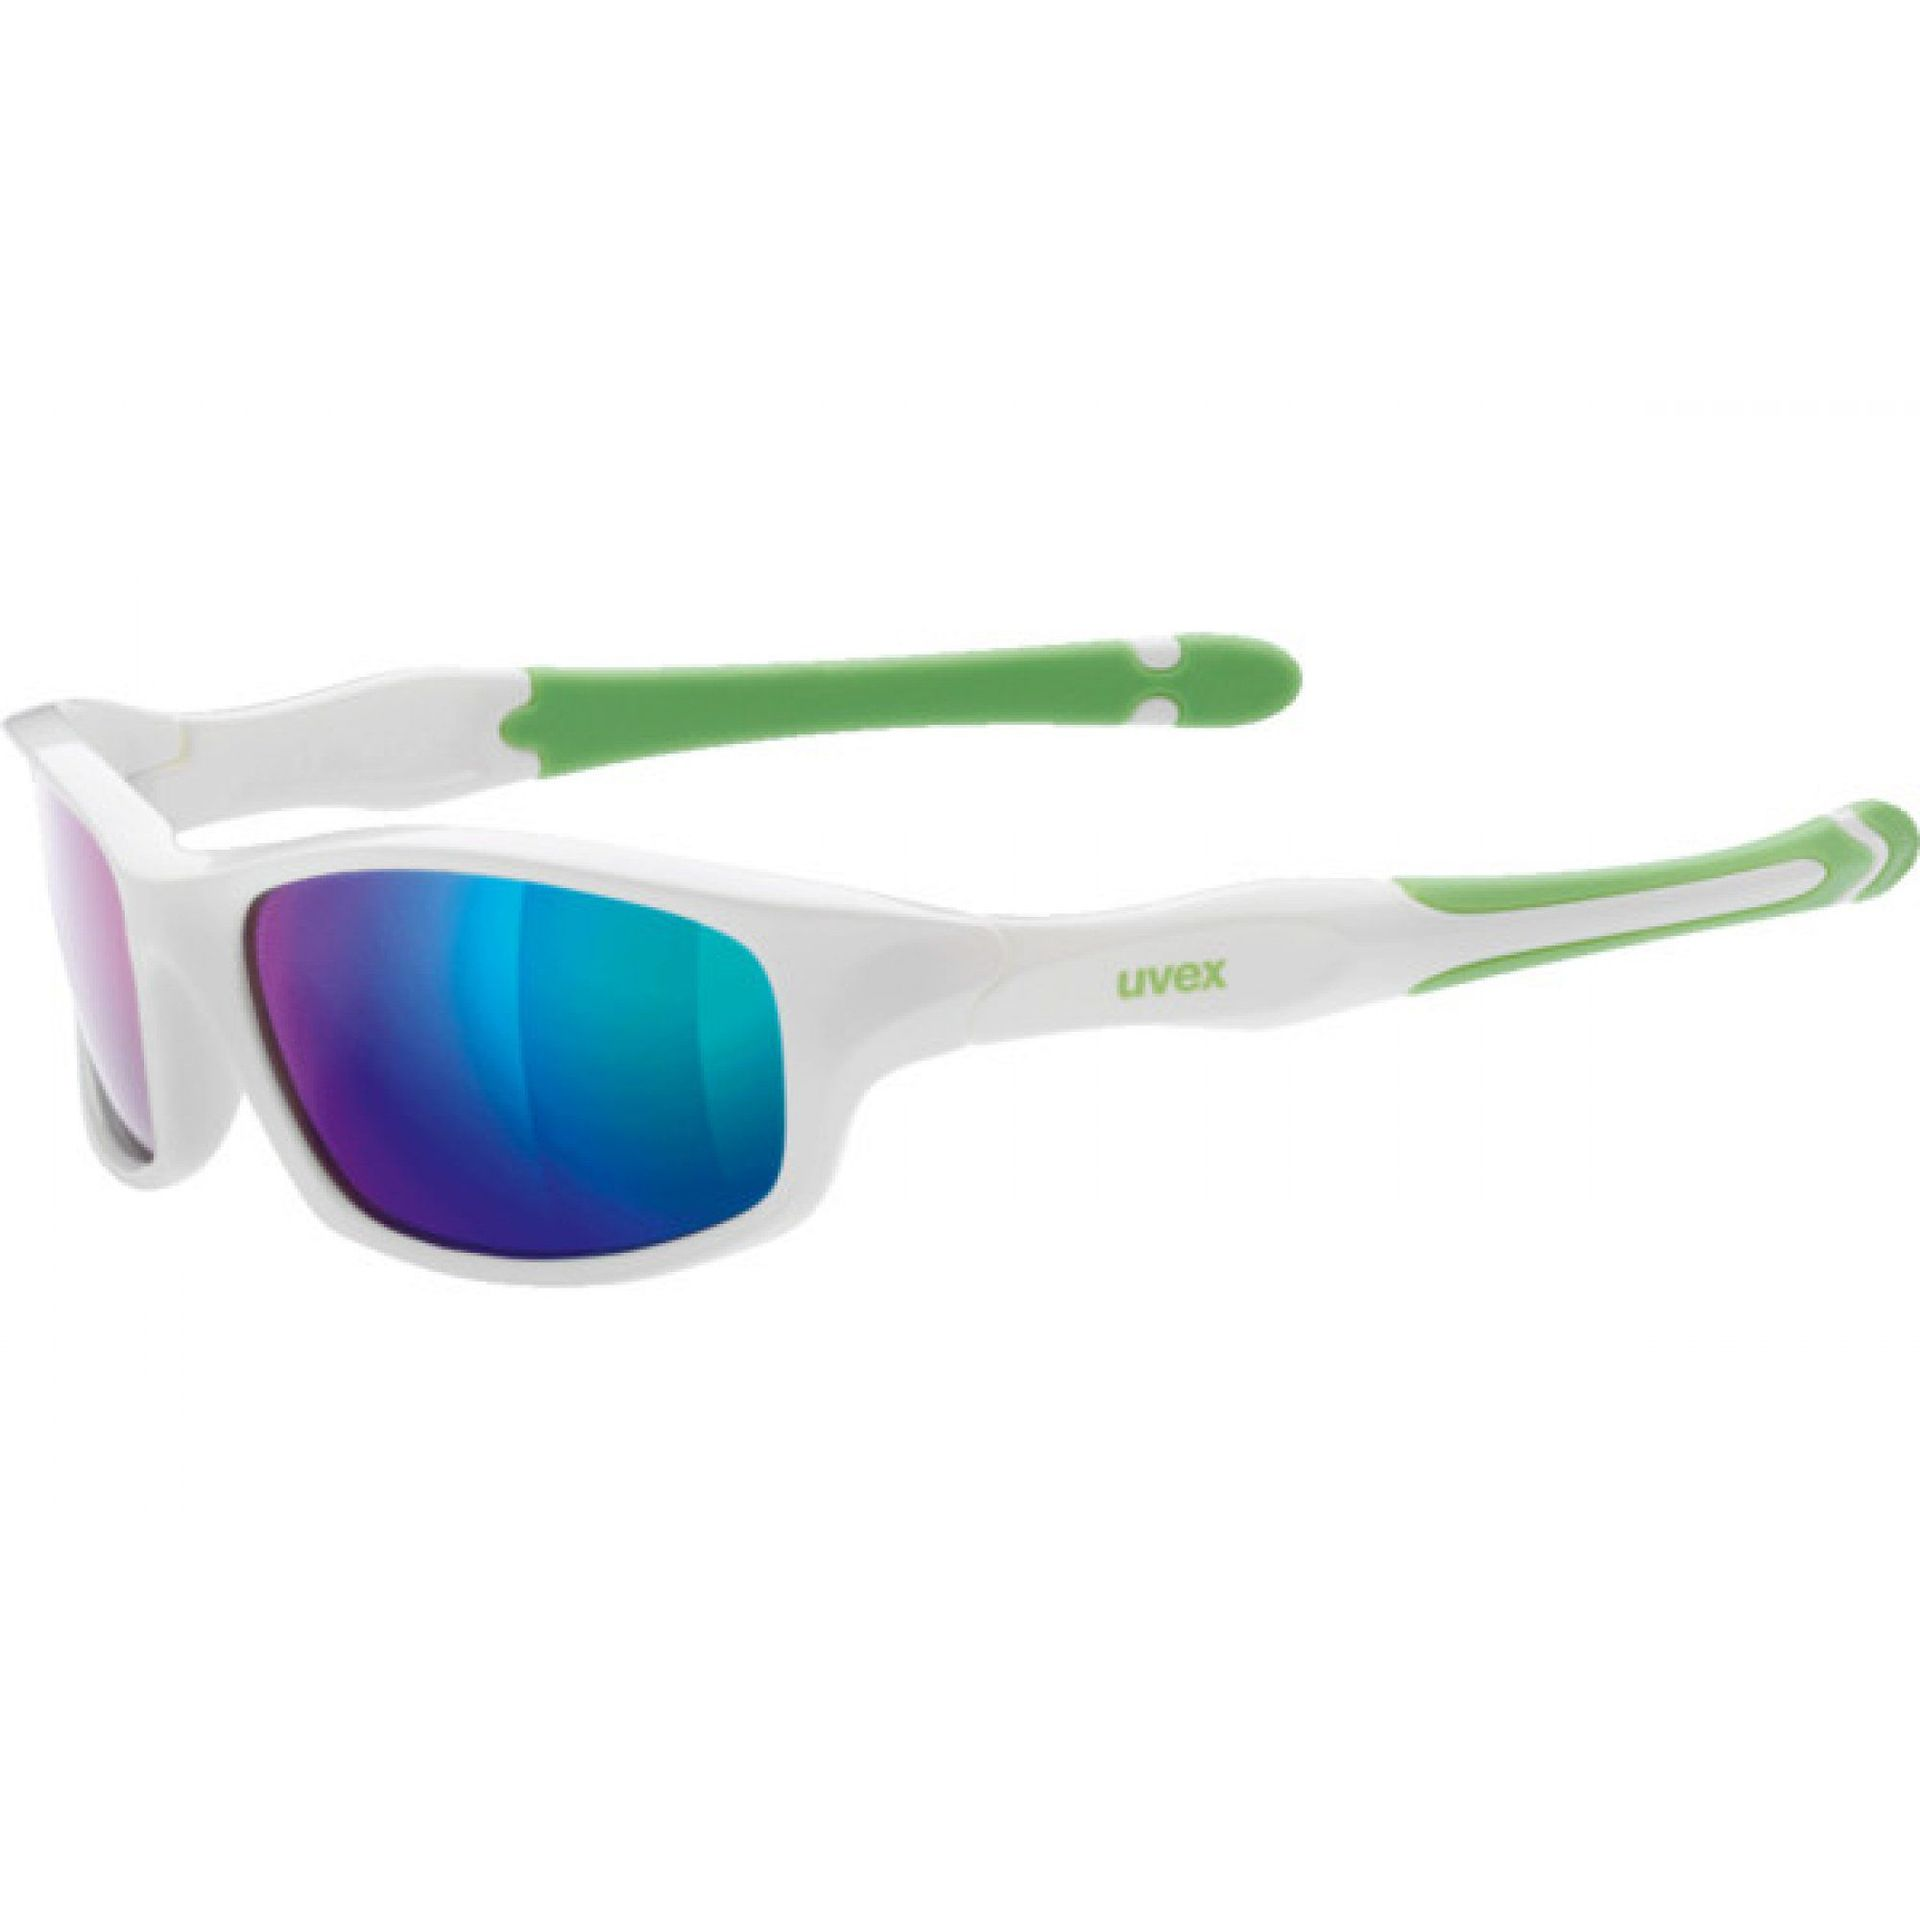 OKULARY UVEX SPORTSTYLE 507 866|8716 WHITE|GREEN